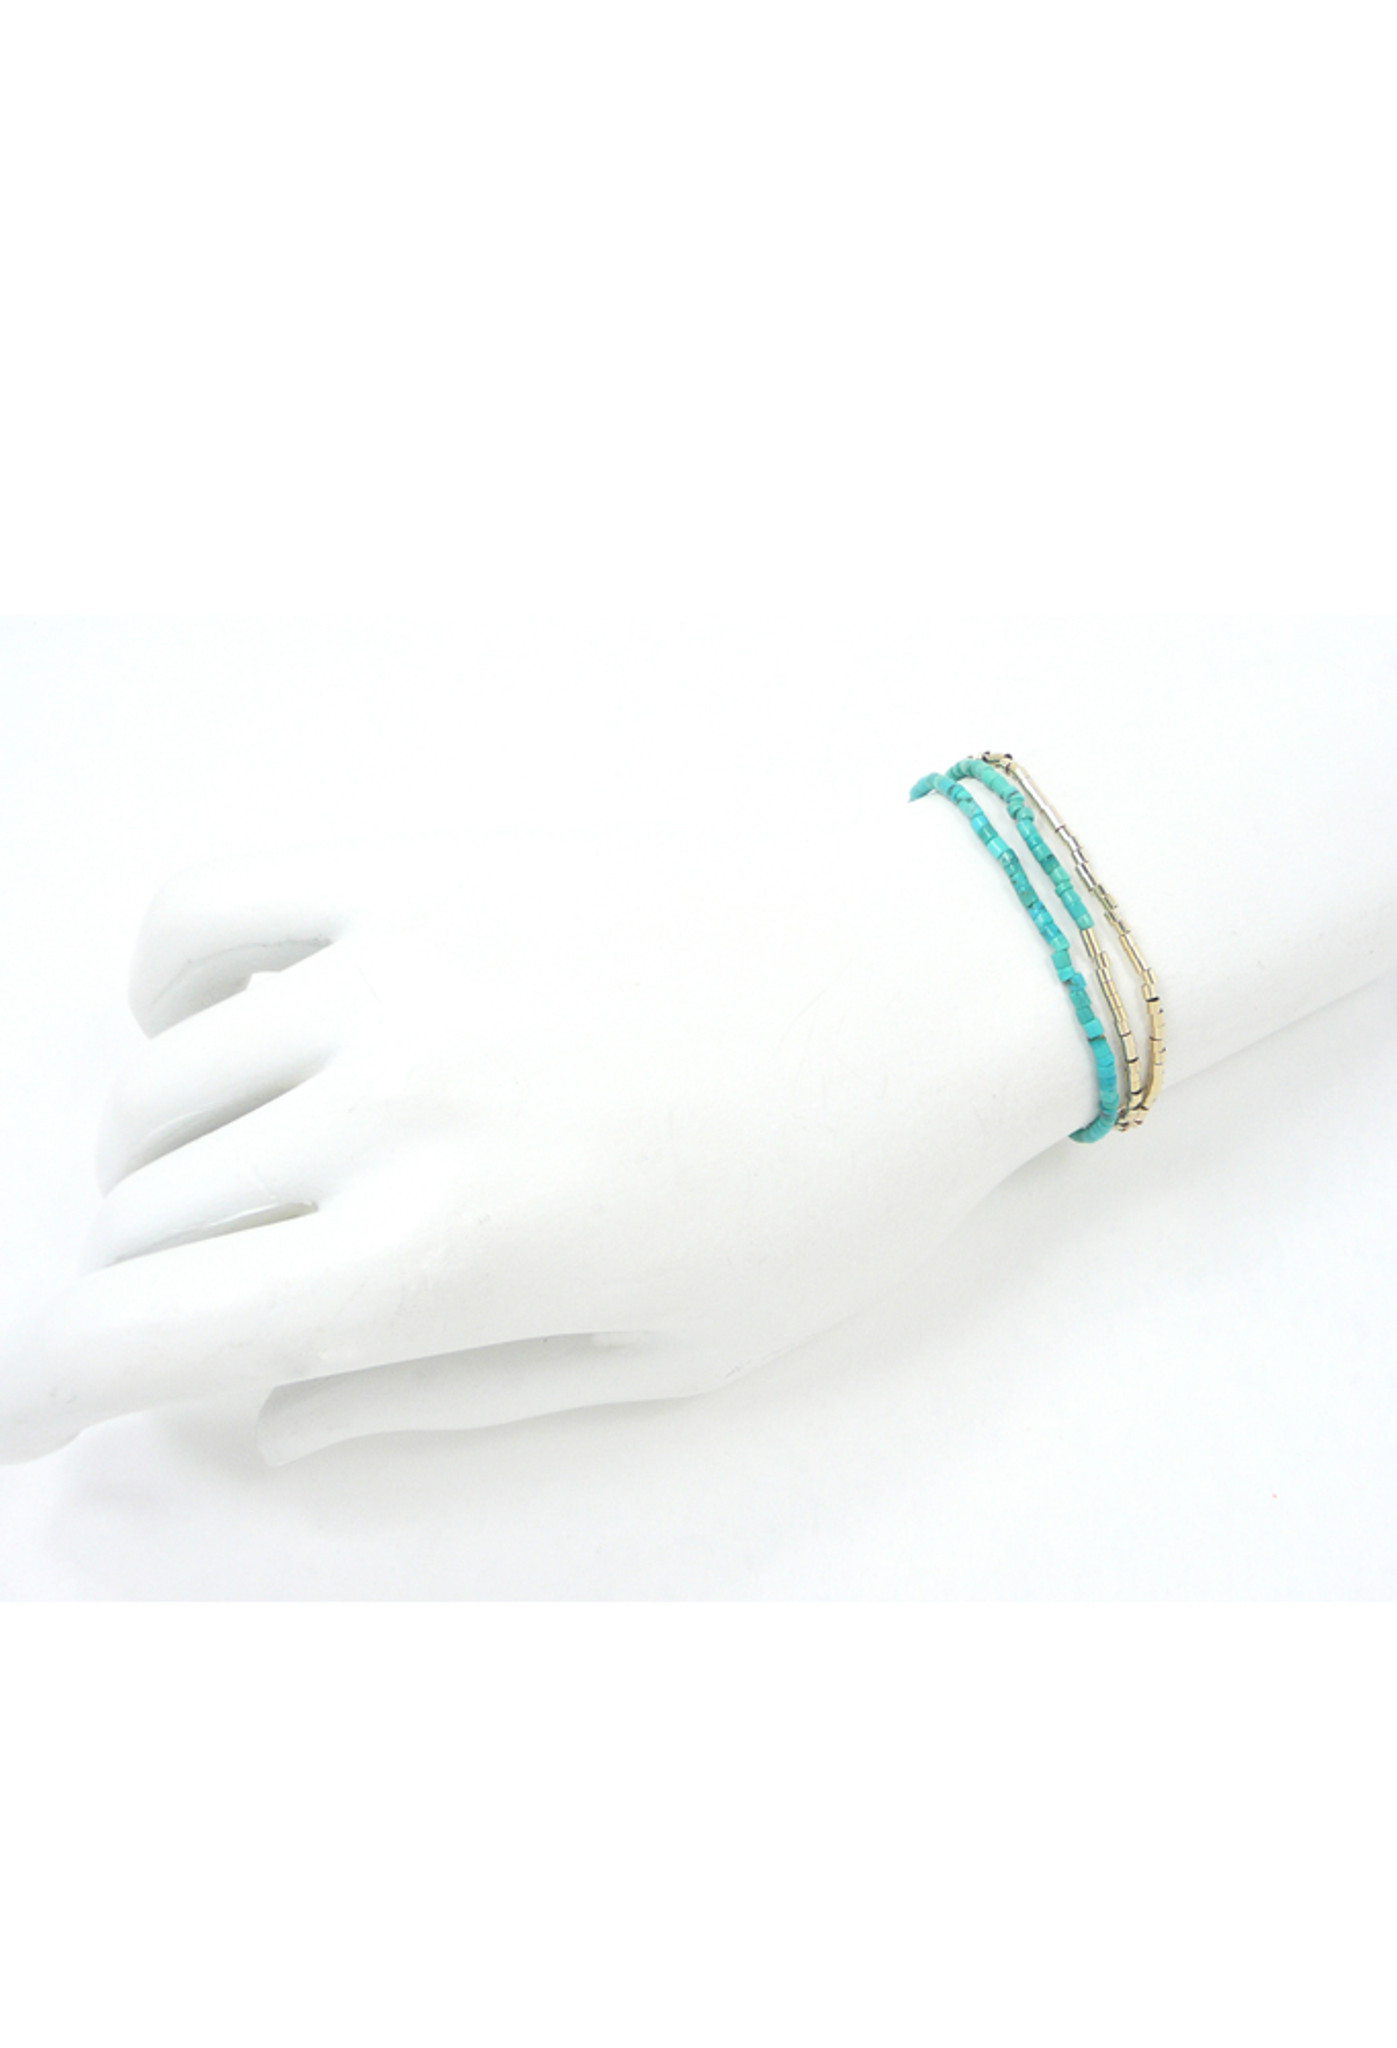 Bracelet View of Turquoise & Gold Bead Necklace and Bracelet by Jewelry Designer Nektar De Stagni